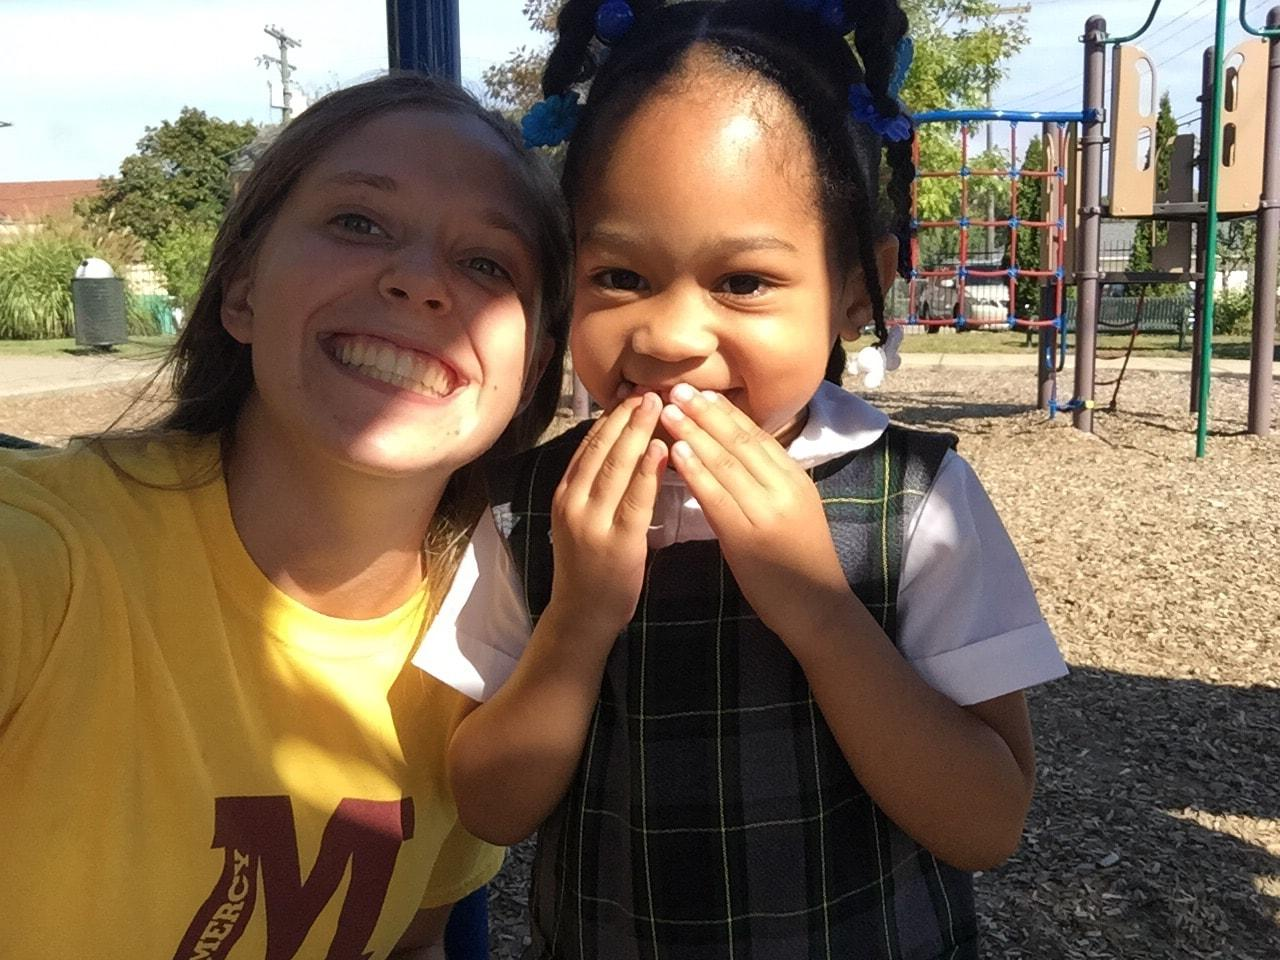 Gesu student Arianna (right) poses with Mercy senior Allia McDowell, hiding her smile from the camera after a long day of playing. (Photo credit: Allia McDowell)